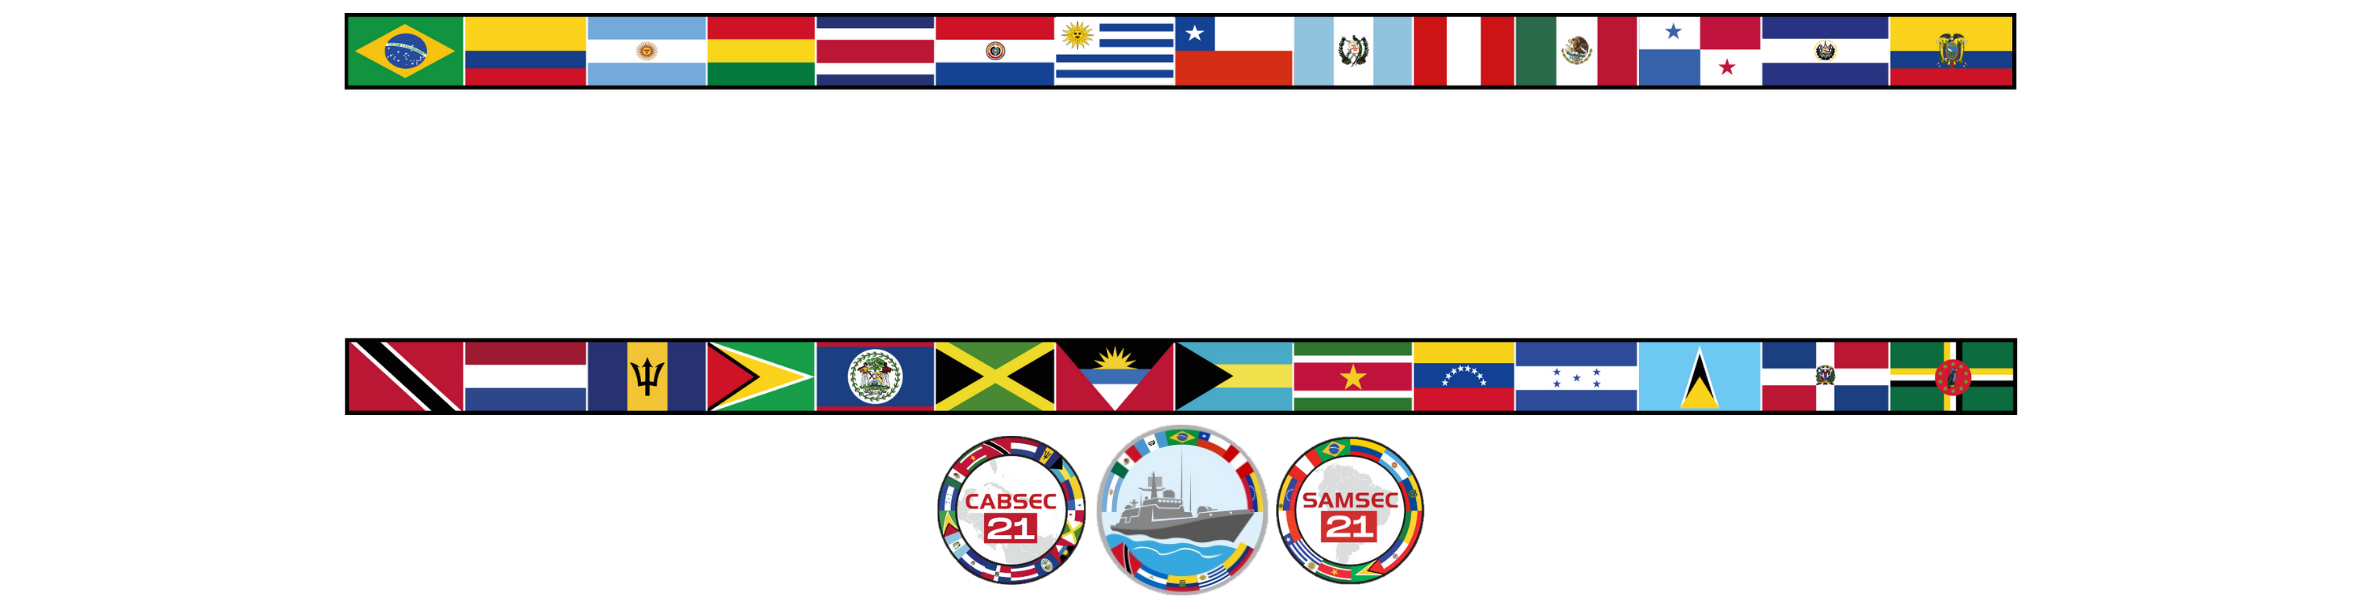 Naval and Maritime Security Week: Latin America & Caribbean